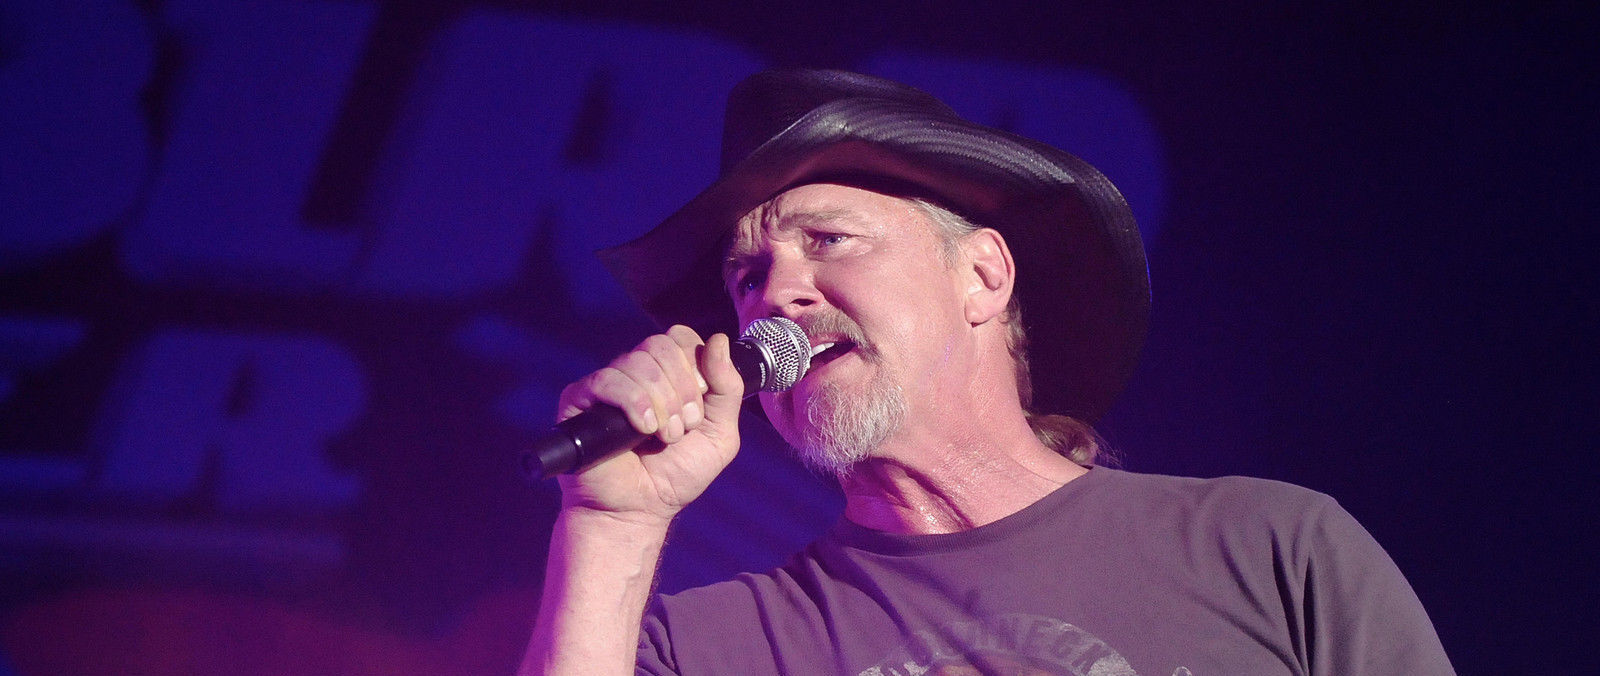 K105 Countryfest with Trace Adkins and more